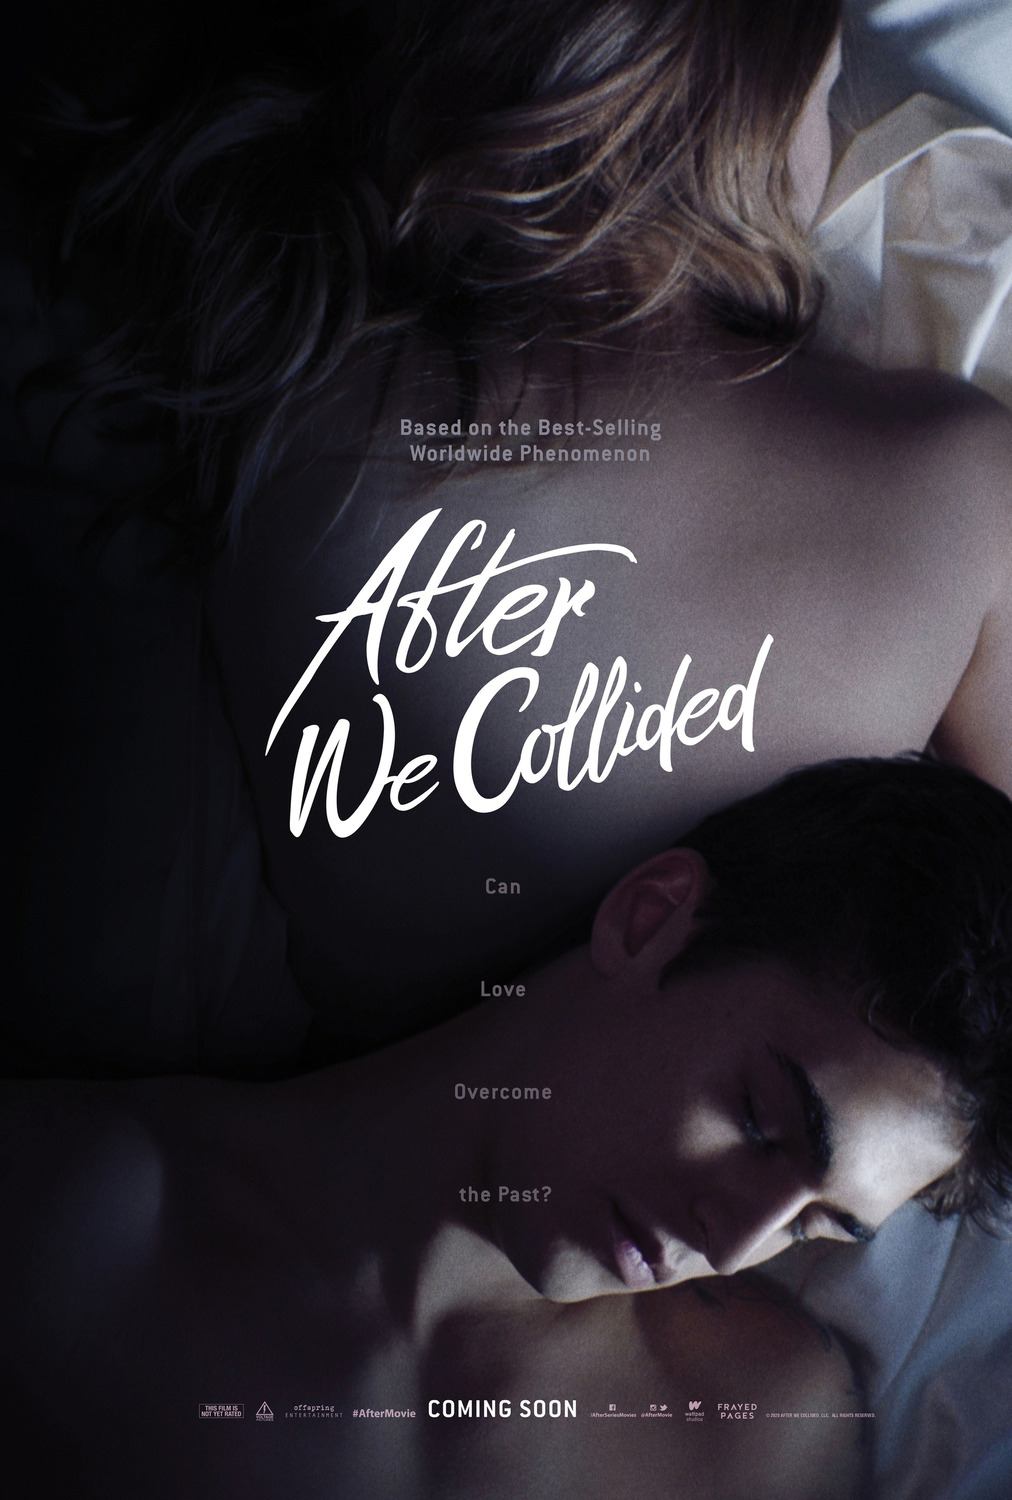 After - Chapitre 2 streaming